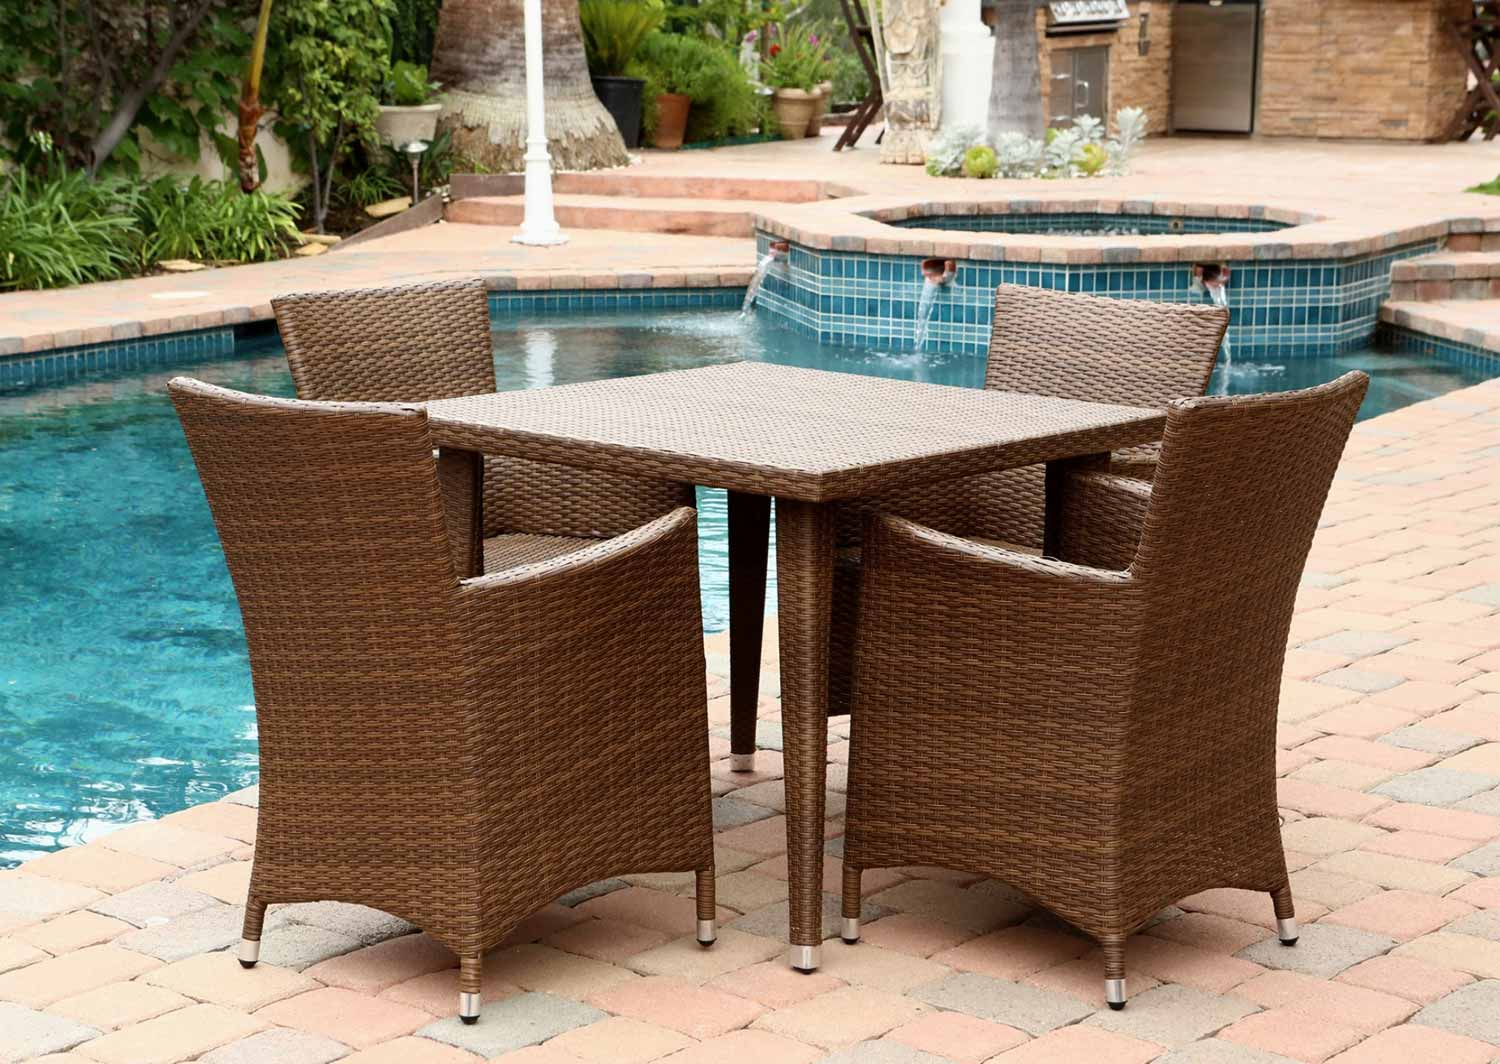 Abbyson Living Palermo Outdoor Wicker Square 5 Piece Dining Set - Brown